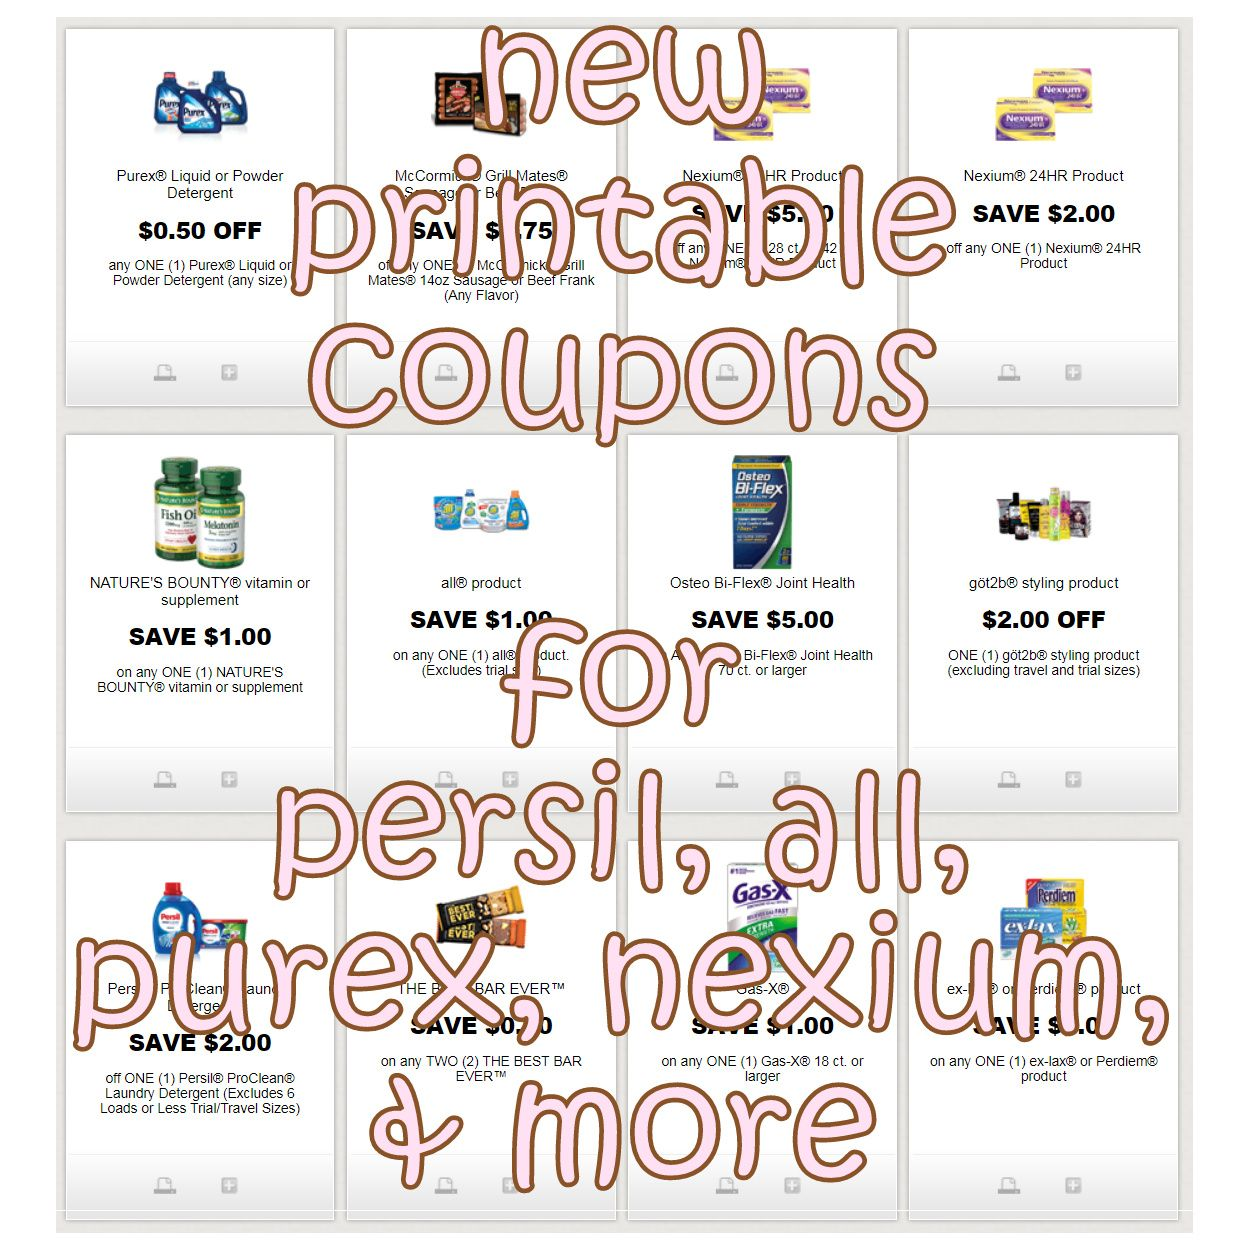 New Printable Coupons For Persil All Purex Nexium More Print Here Http Www Iheartcoupons Net P Redplum Htm Printable Coupons Coupons Joint Health